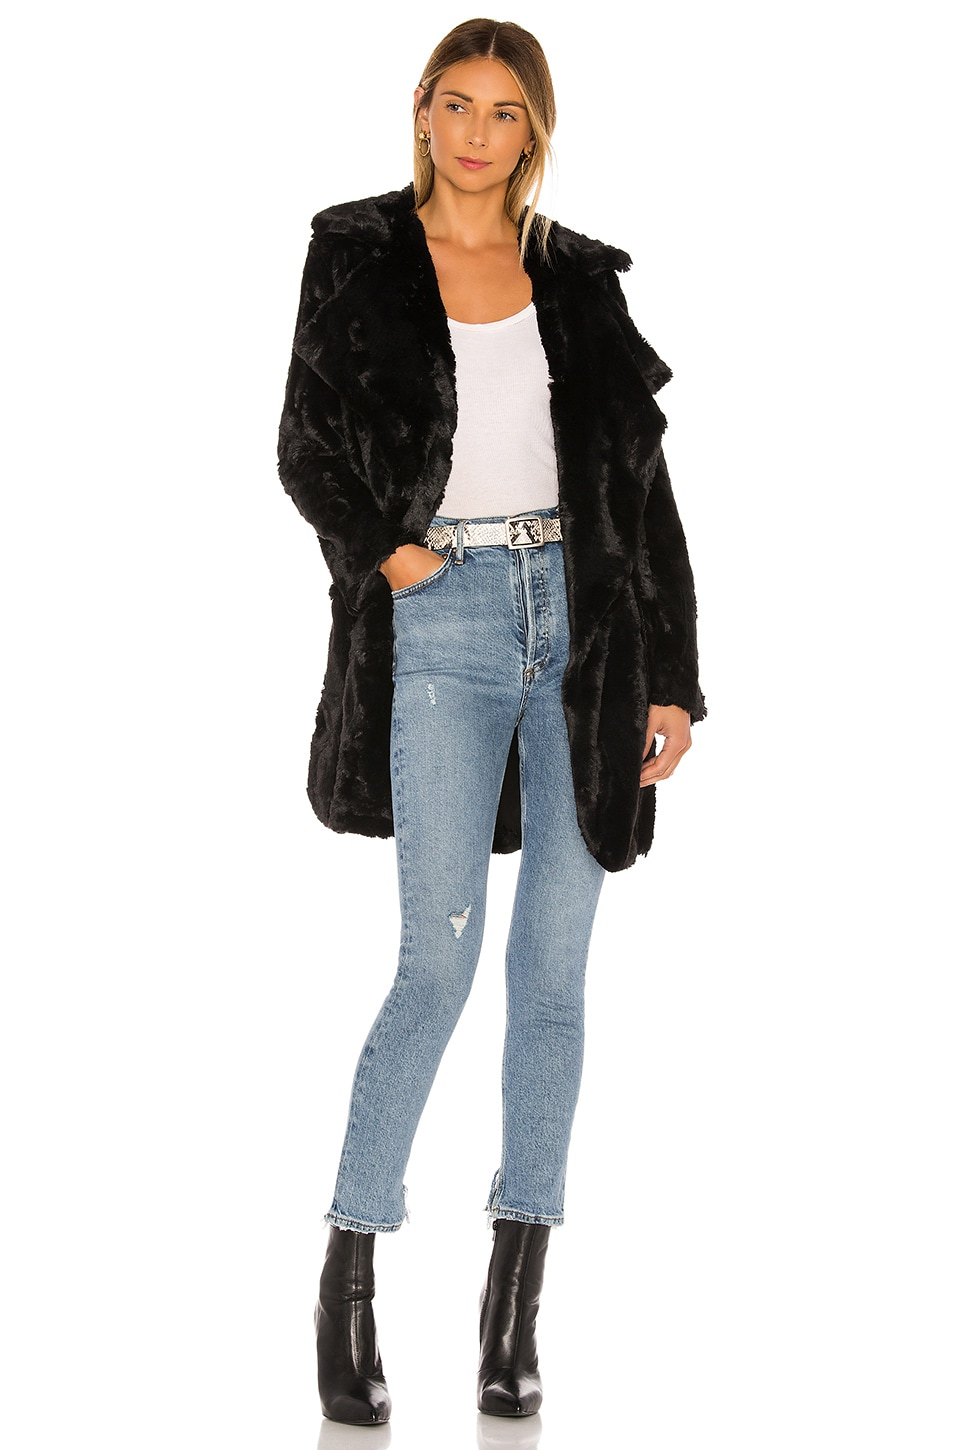 BB Dakota Jack By BB Dakota Shear Factor Faux Fur Coat in Black